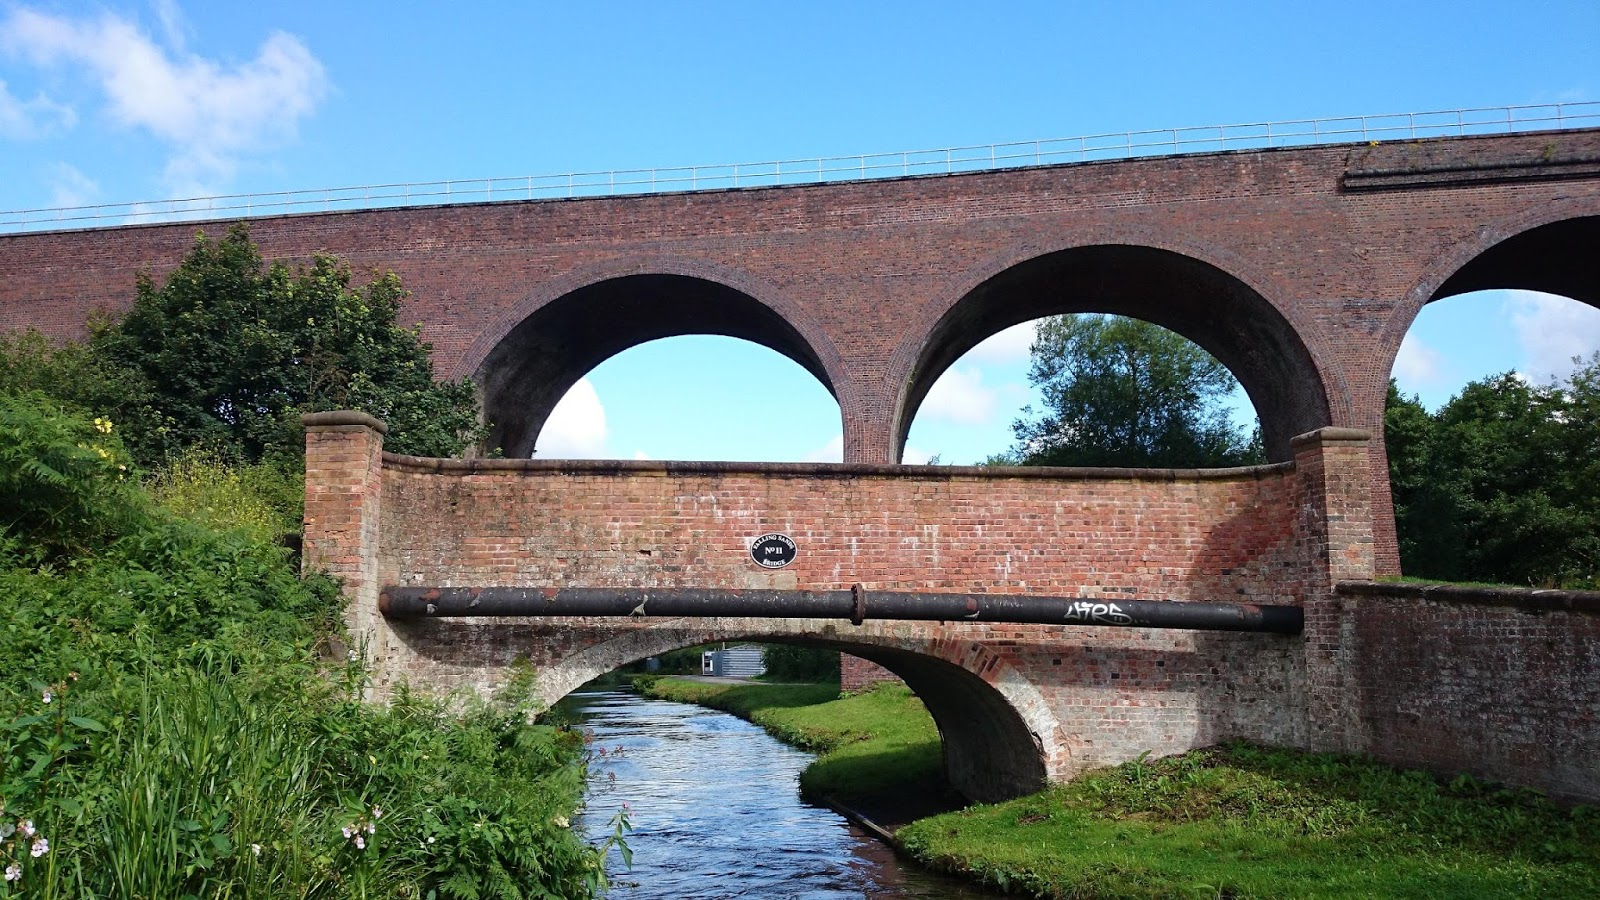 Voyages of Gabriel: Kidderminster to Droitwich